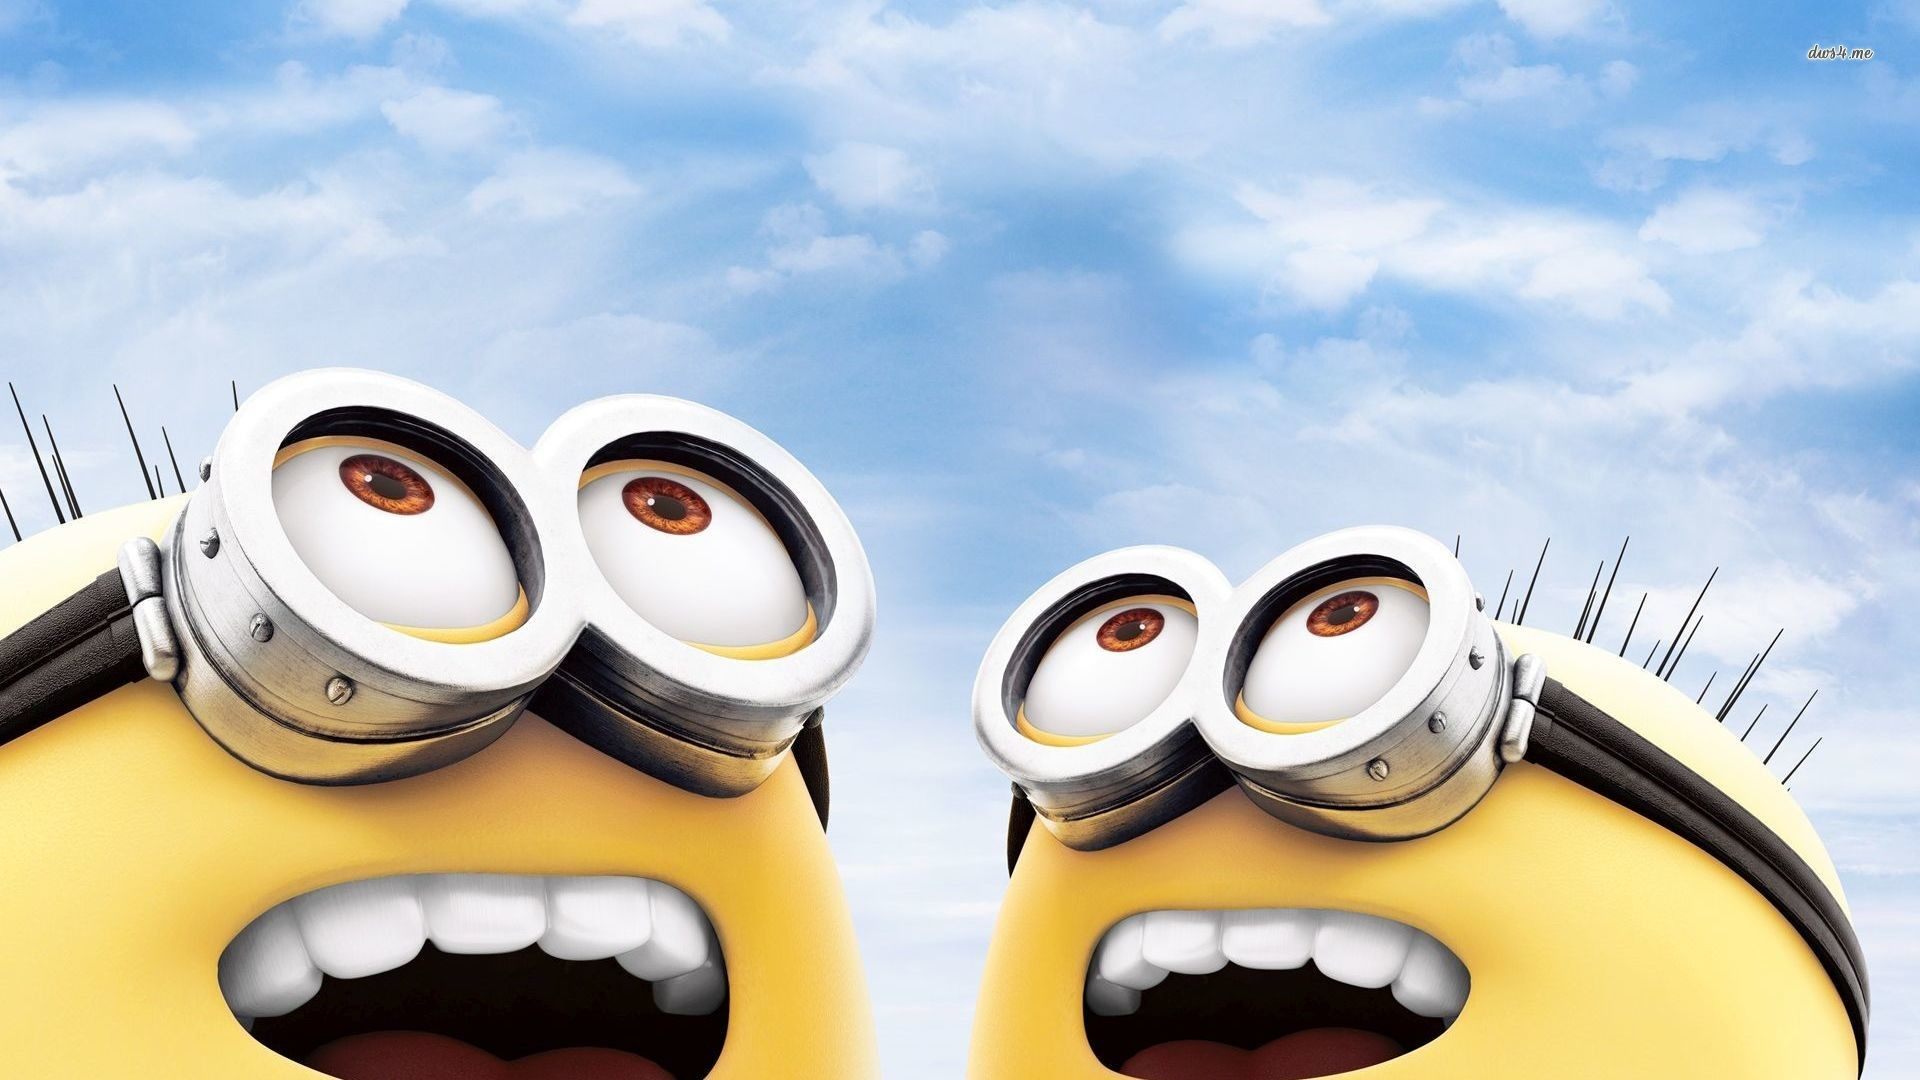 Minion Wallpaper For Android (80+ Images